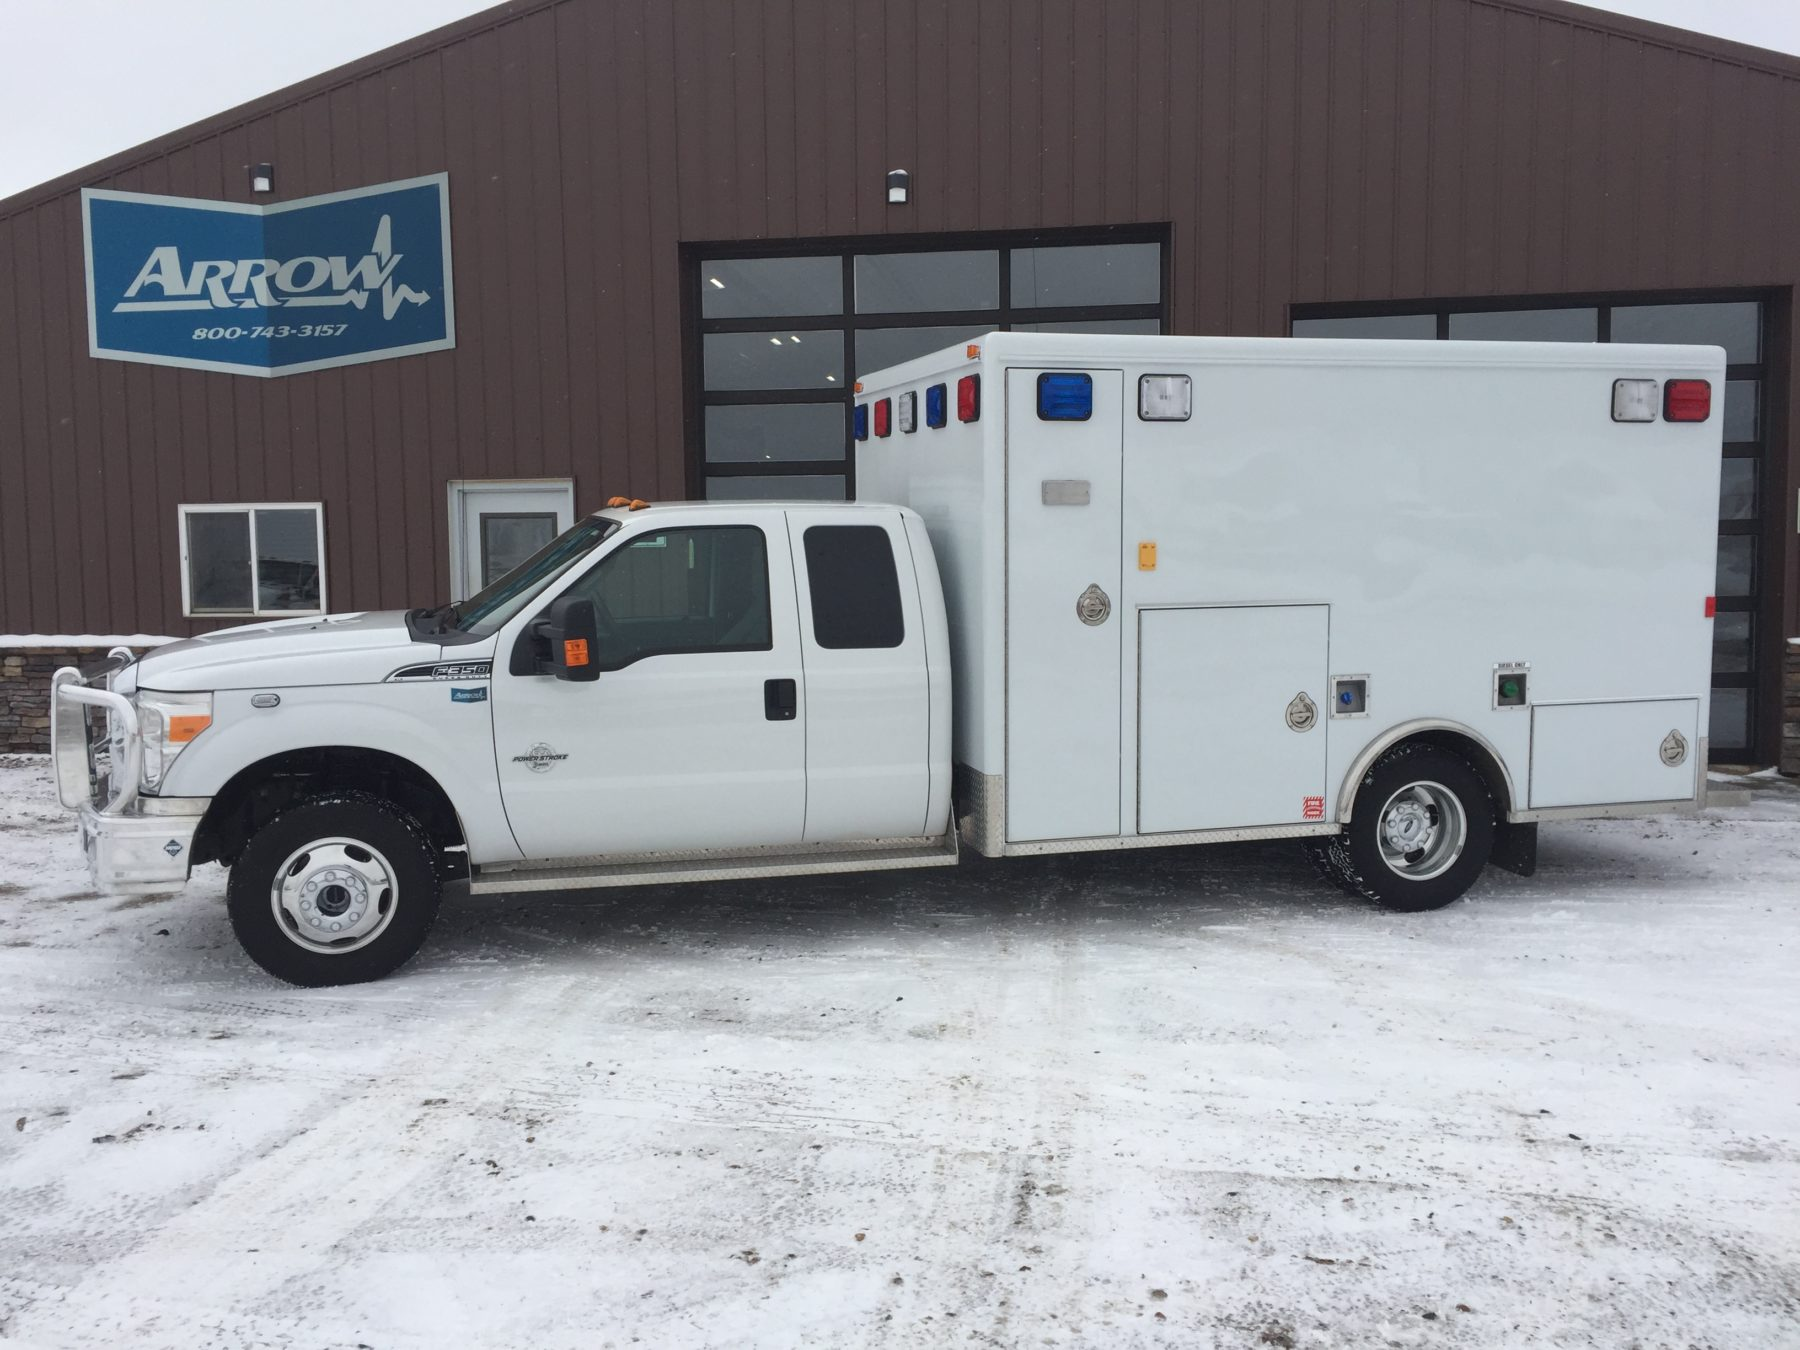 2013 Ford F350 4x4 Type 1 Ambulance For Sale – Picture 1